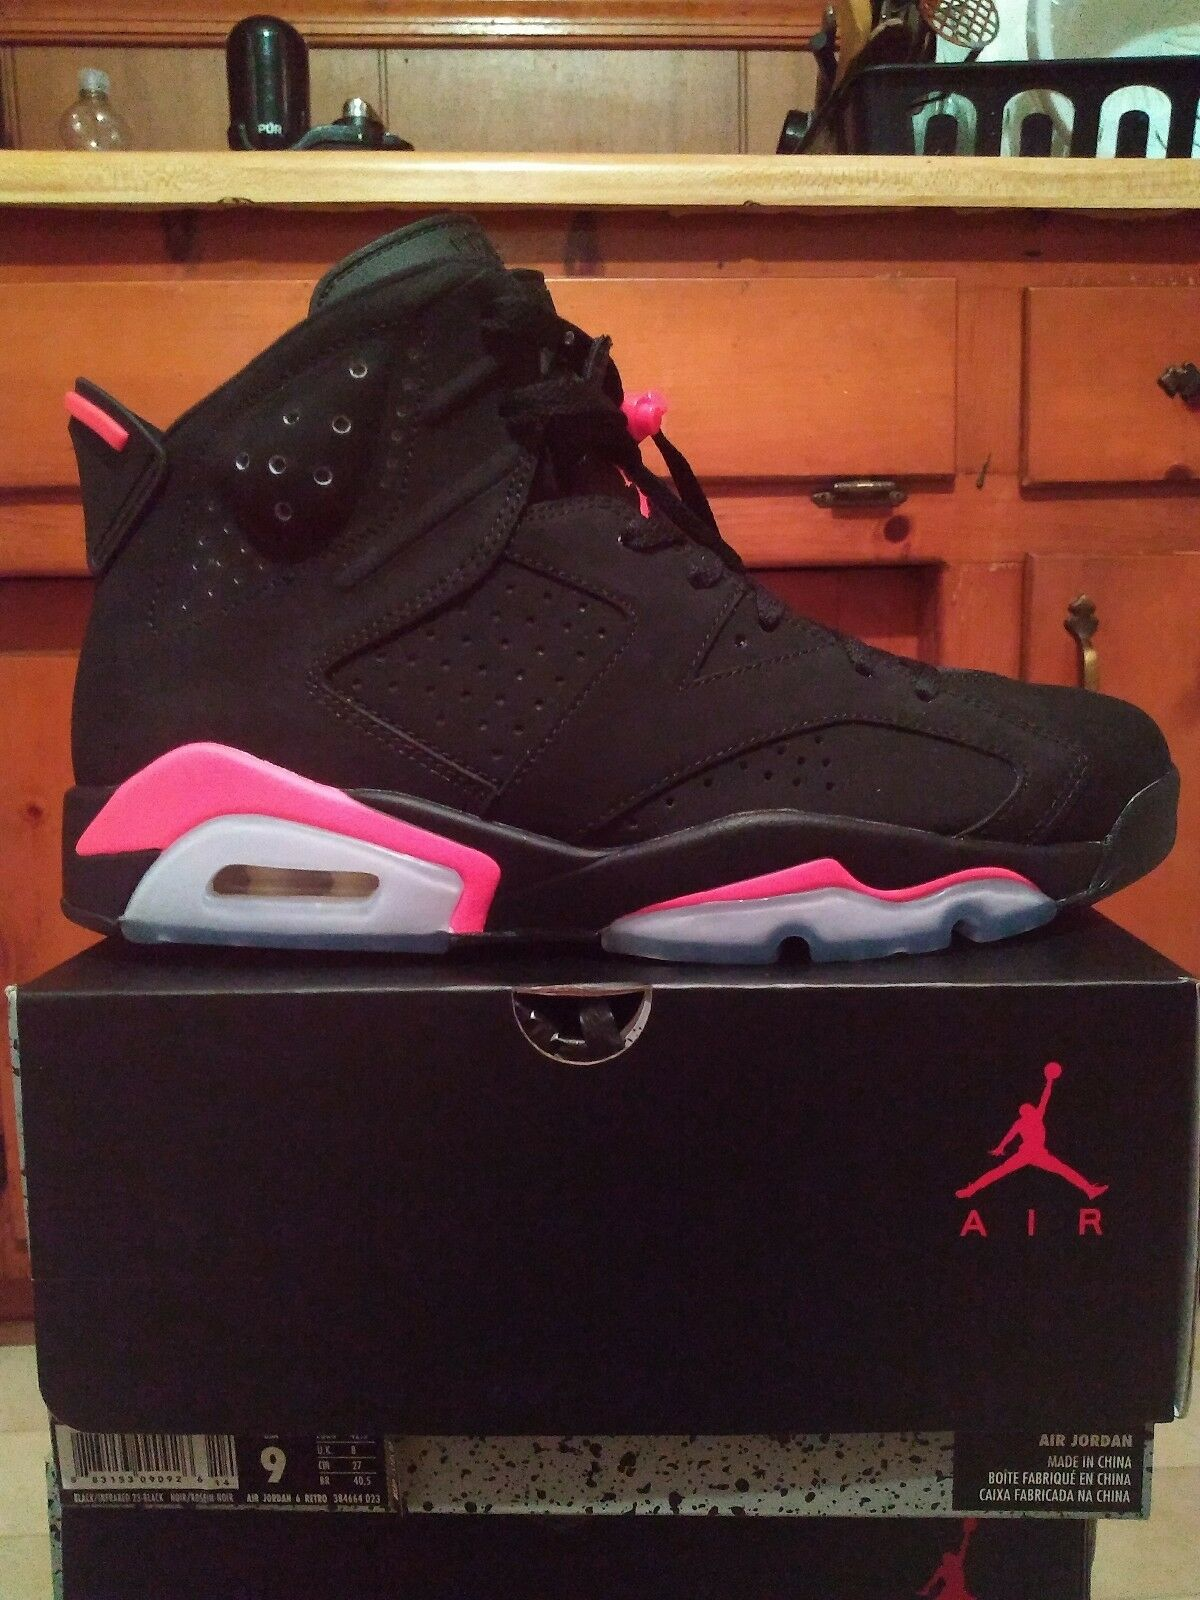 Jordan 6 Black Infrared Size 9 DS